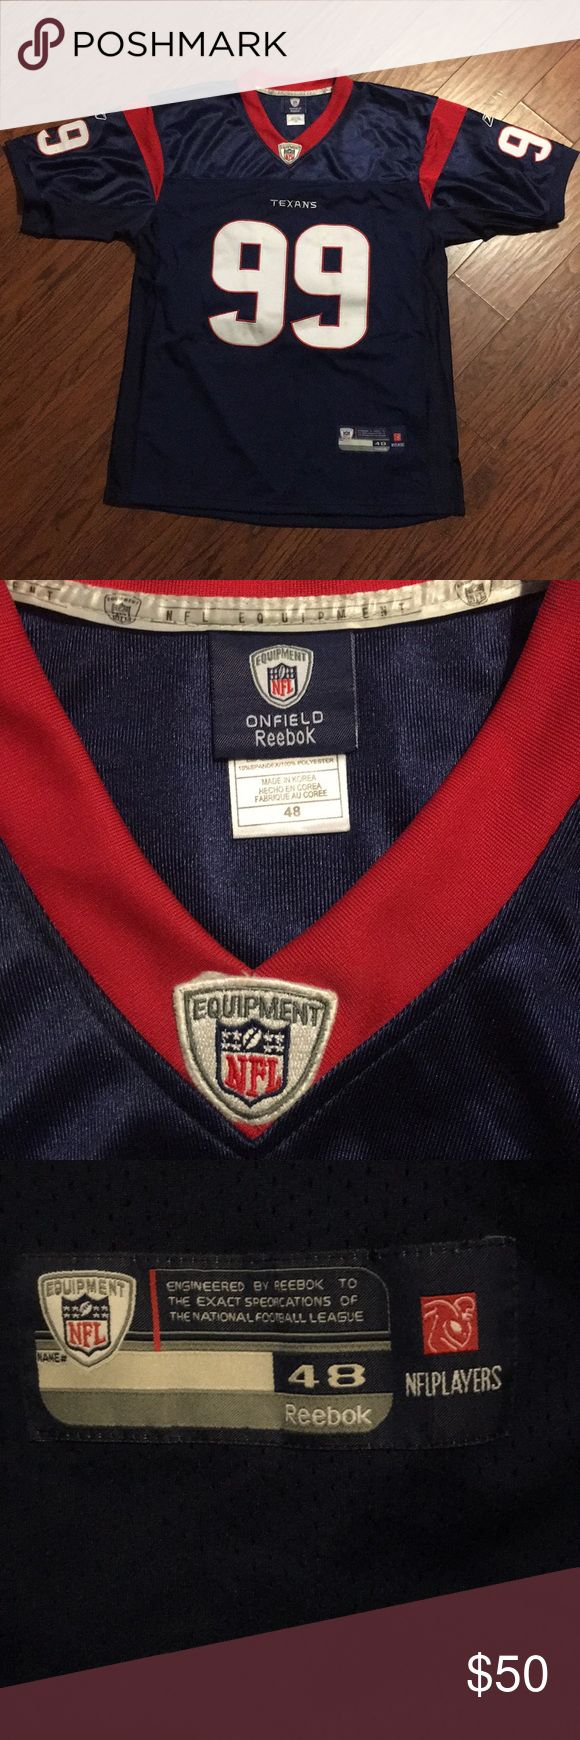 """JJ Watt Texans Jersey #99 JJ Watt Texans Jersey. As seen in the pictures there are a few stain spots on the numbers on front. You may be able to get it out with some spot bleach cleaner, I just haven't tried. Men's size 48, measures 24"""" armpit to armpit Reebok Shirts"""